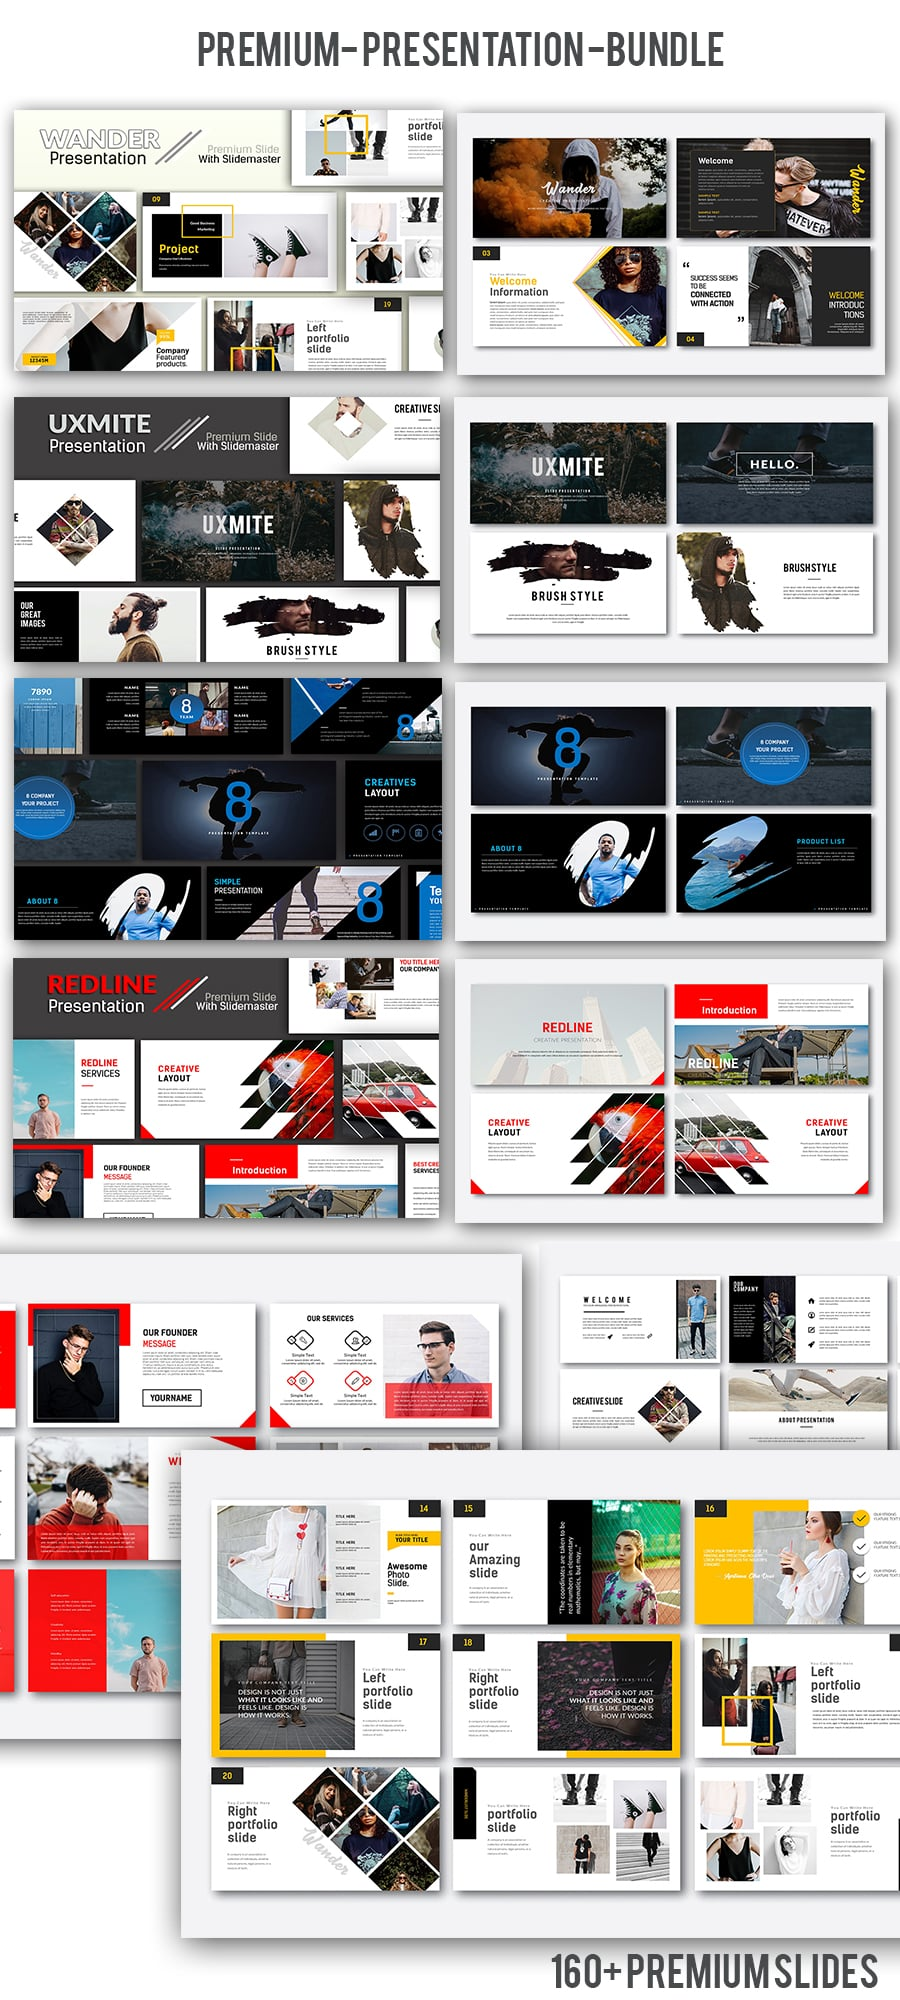 Simple Powerpoint Templates in 2020. 4 In 1 Creative Presentation Bundle - 900